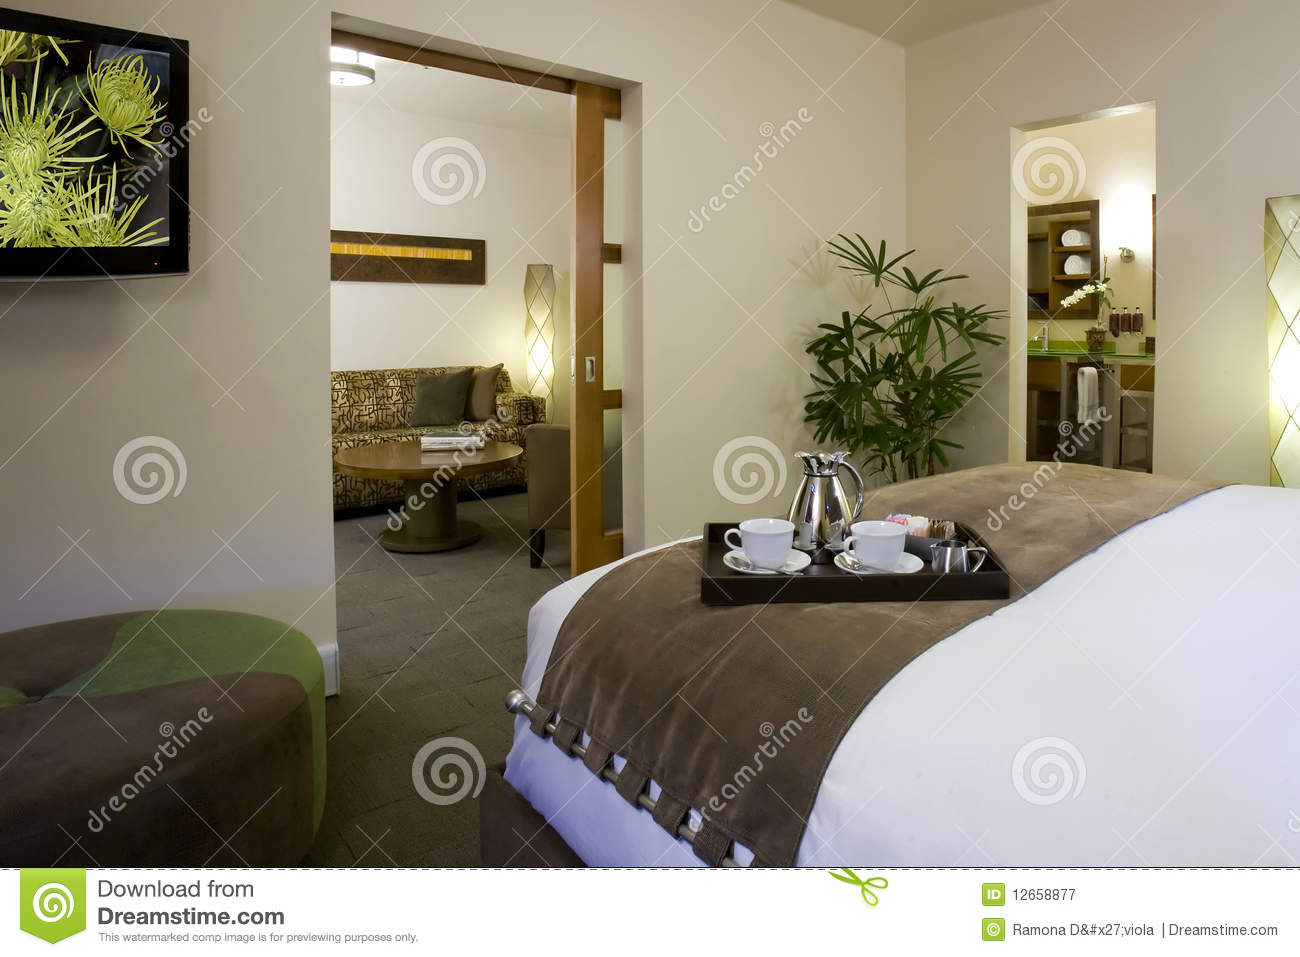 Suites and guest rooms in a boutique hotel royalty free for Boutique inns with rooms